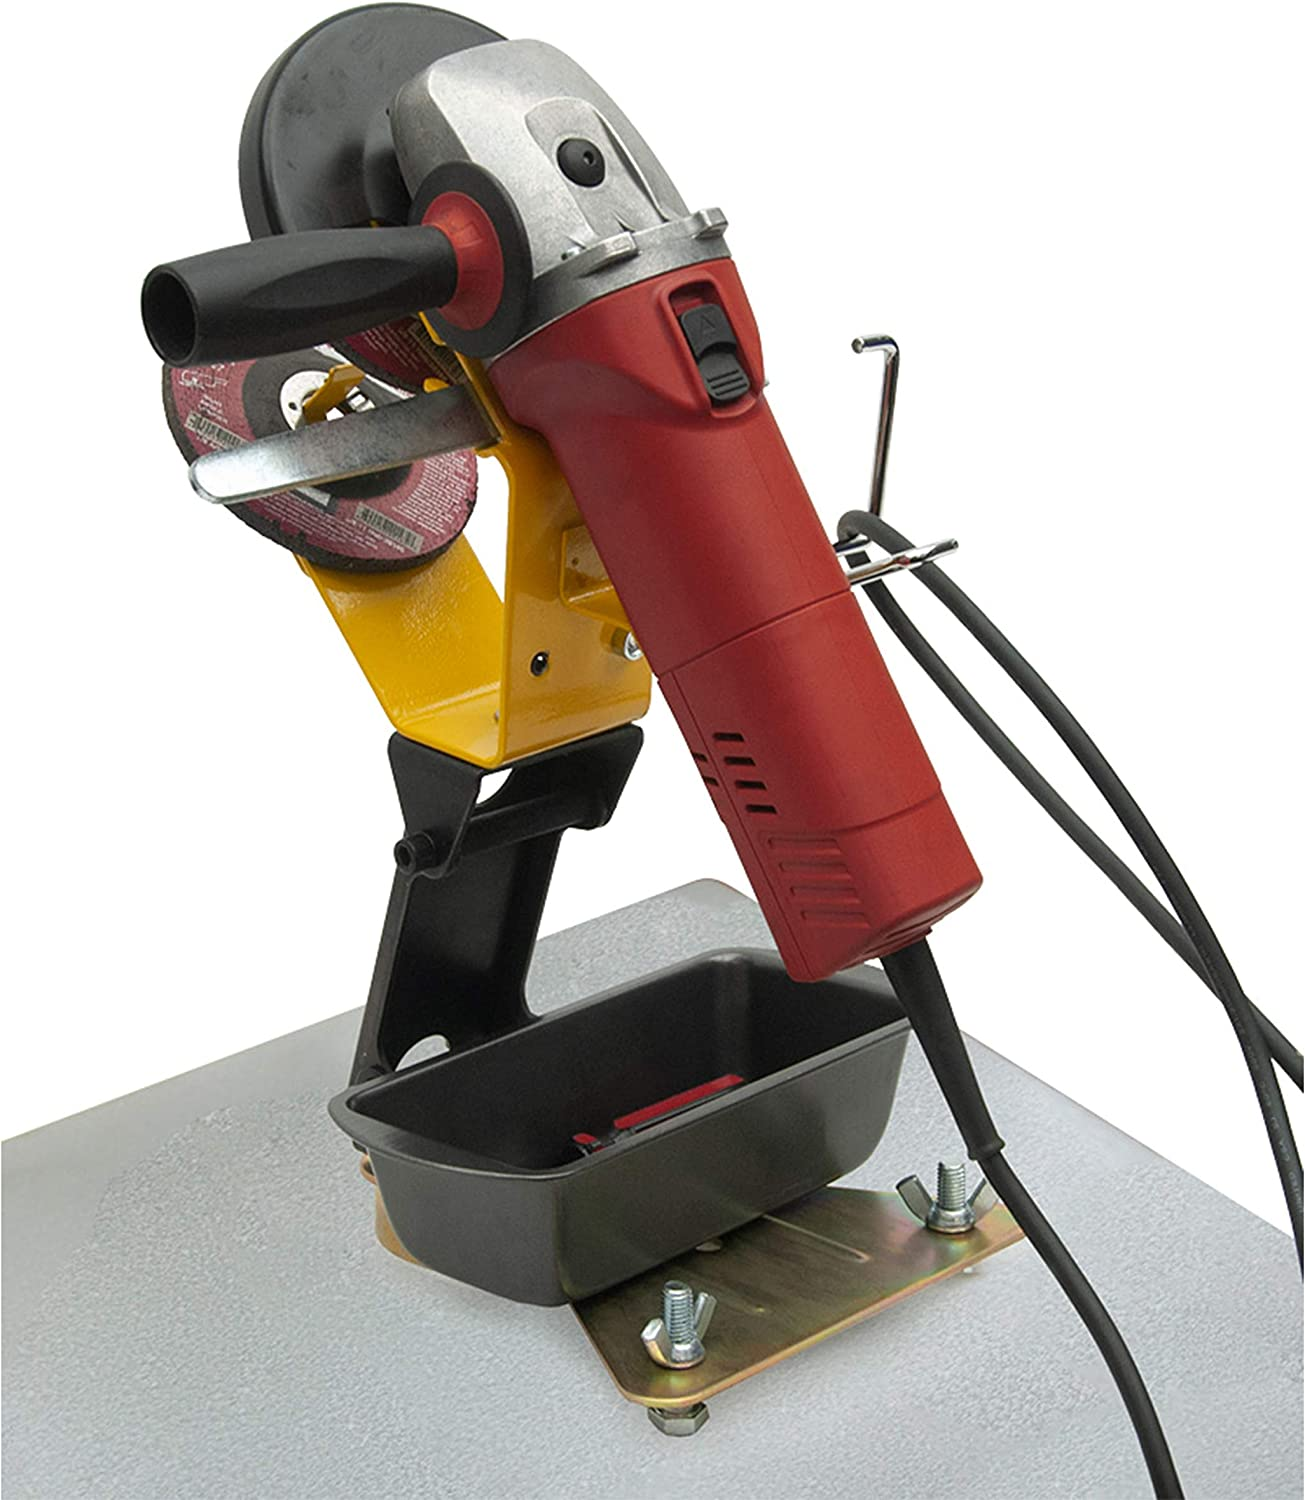 Strong Hand Tools Anti-tipping plate with Part Storage Grinder Rest with Adjustable Cable Hanger Height /& Angle Adjustable